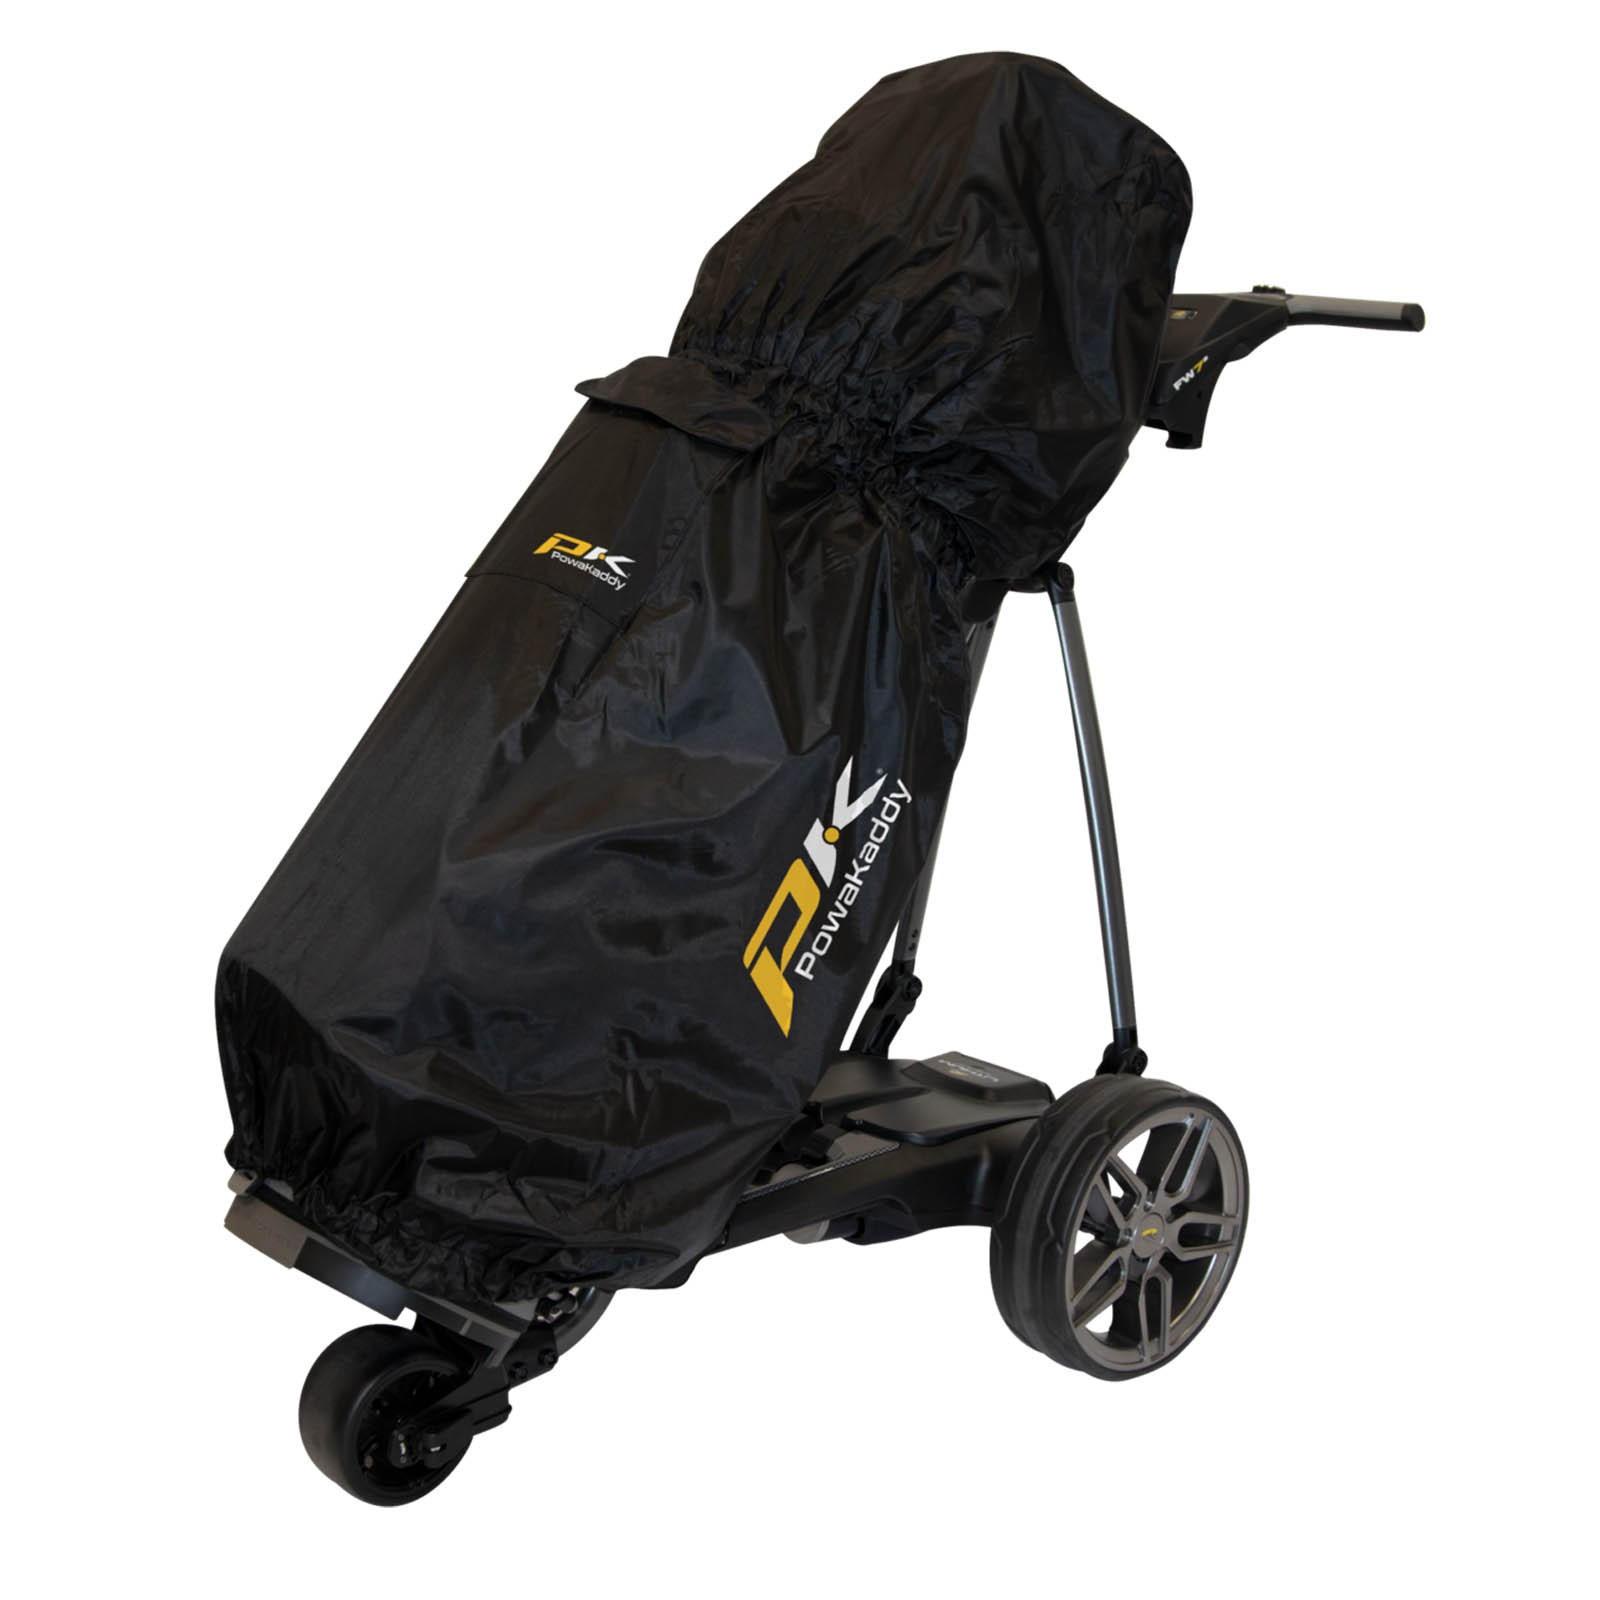 Powakaddy Rain Cover accessory